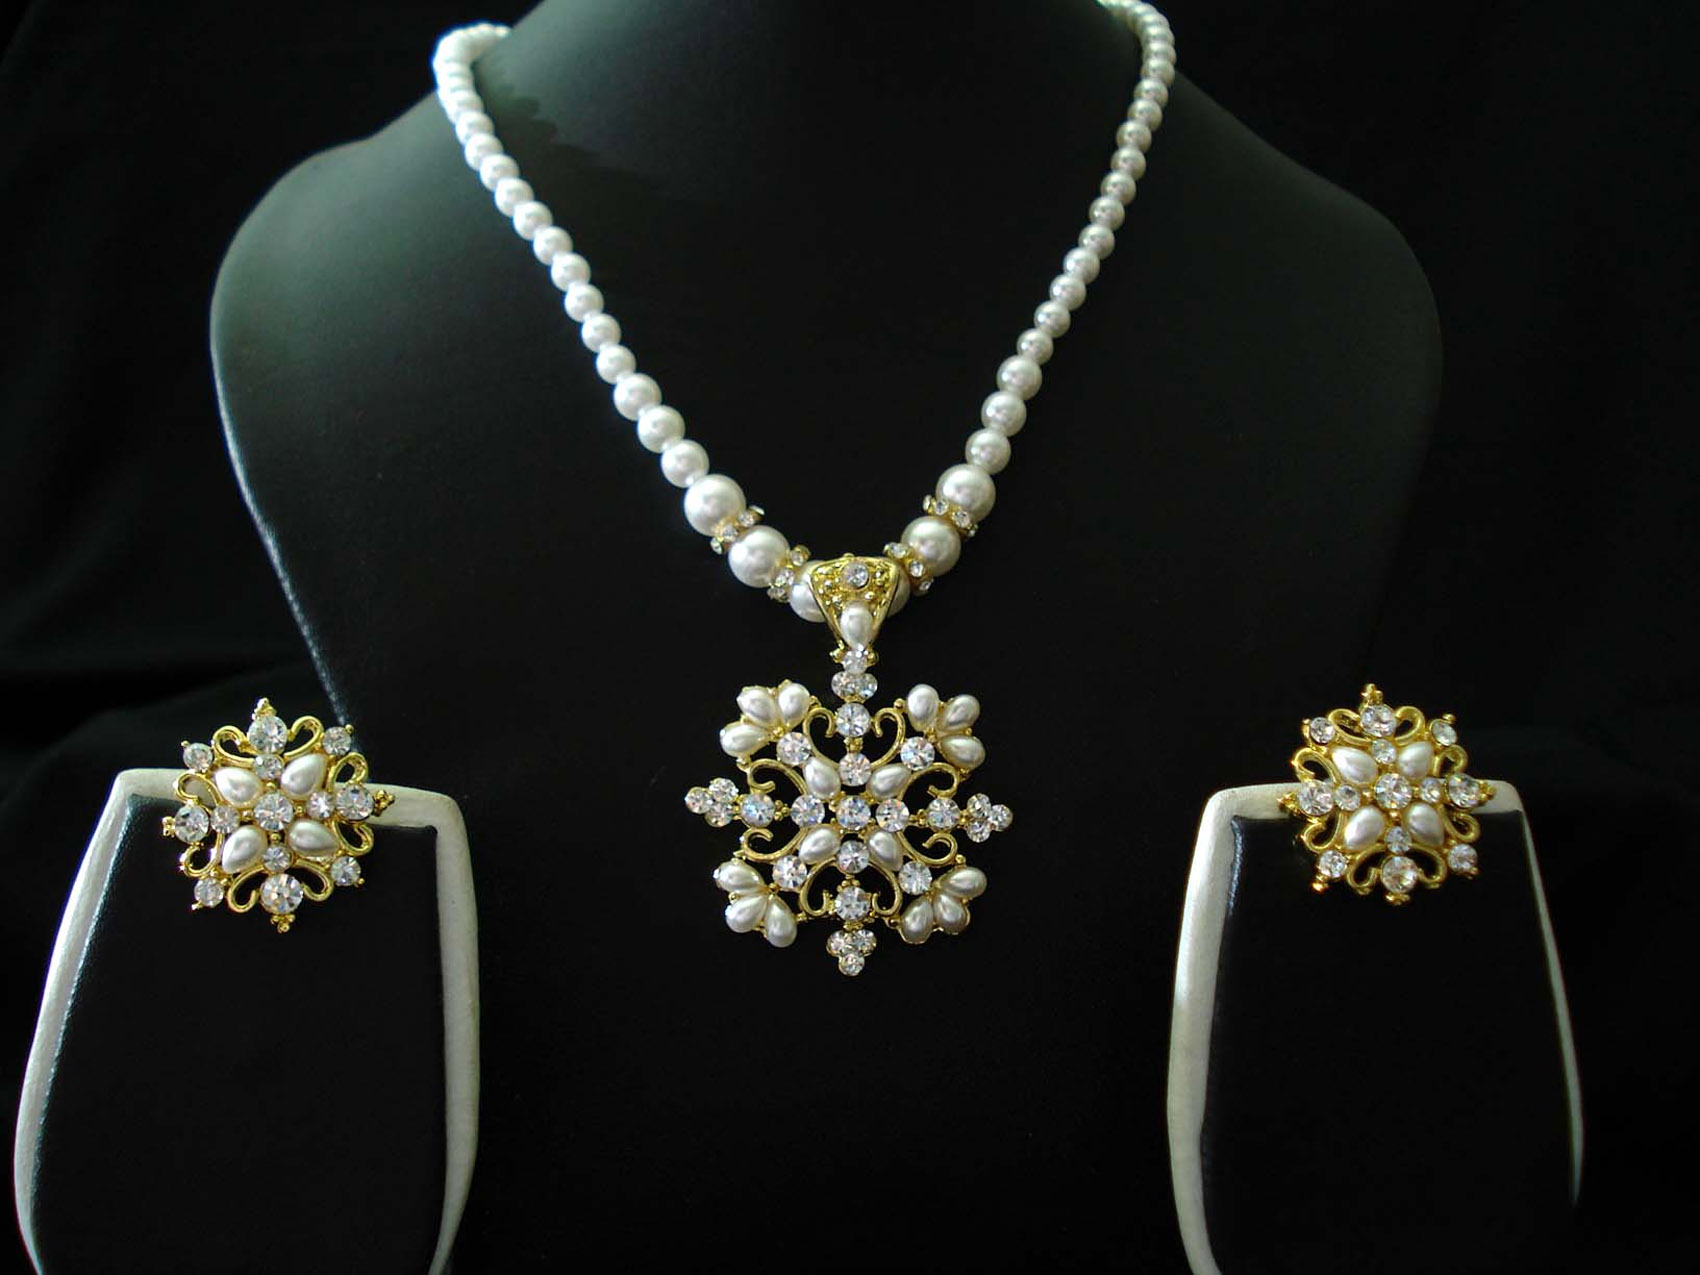 jewelry sets necklaces and earrings 32415 - Fashion & Accessories ...